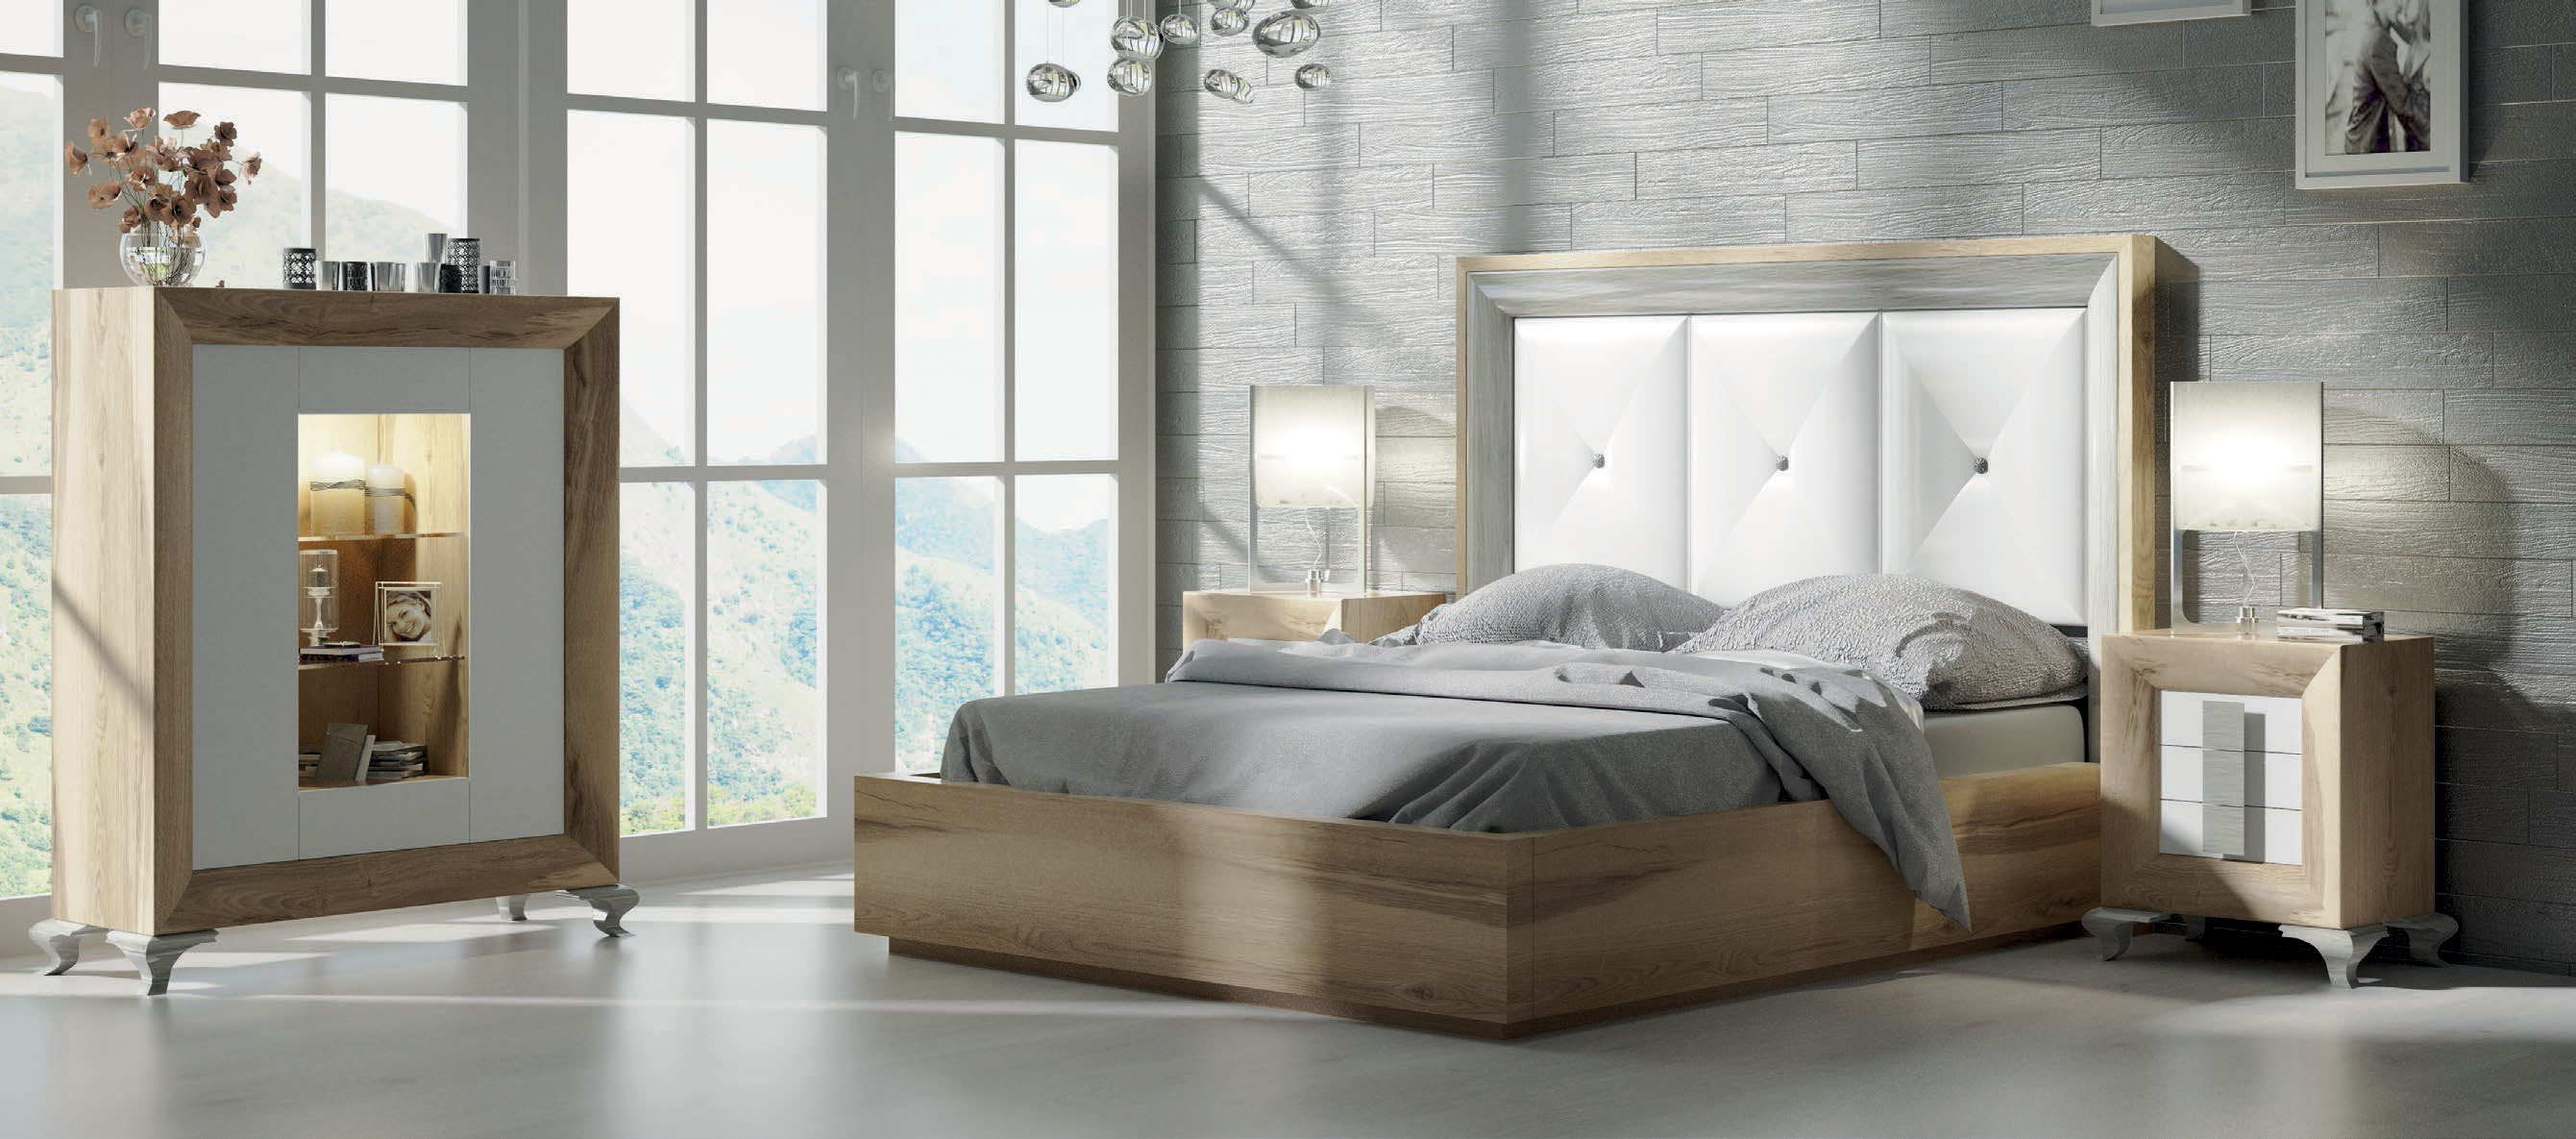 Brands Franco Furniture Bedrooms vol2, Spain DOR 146